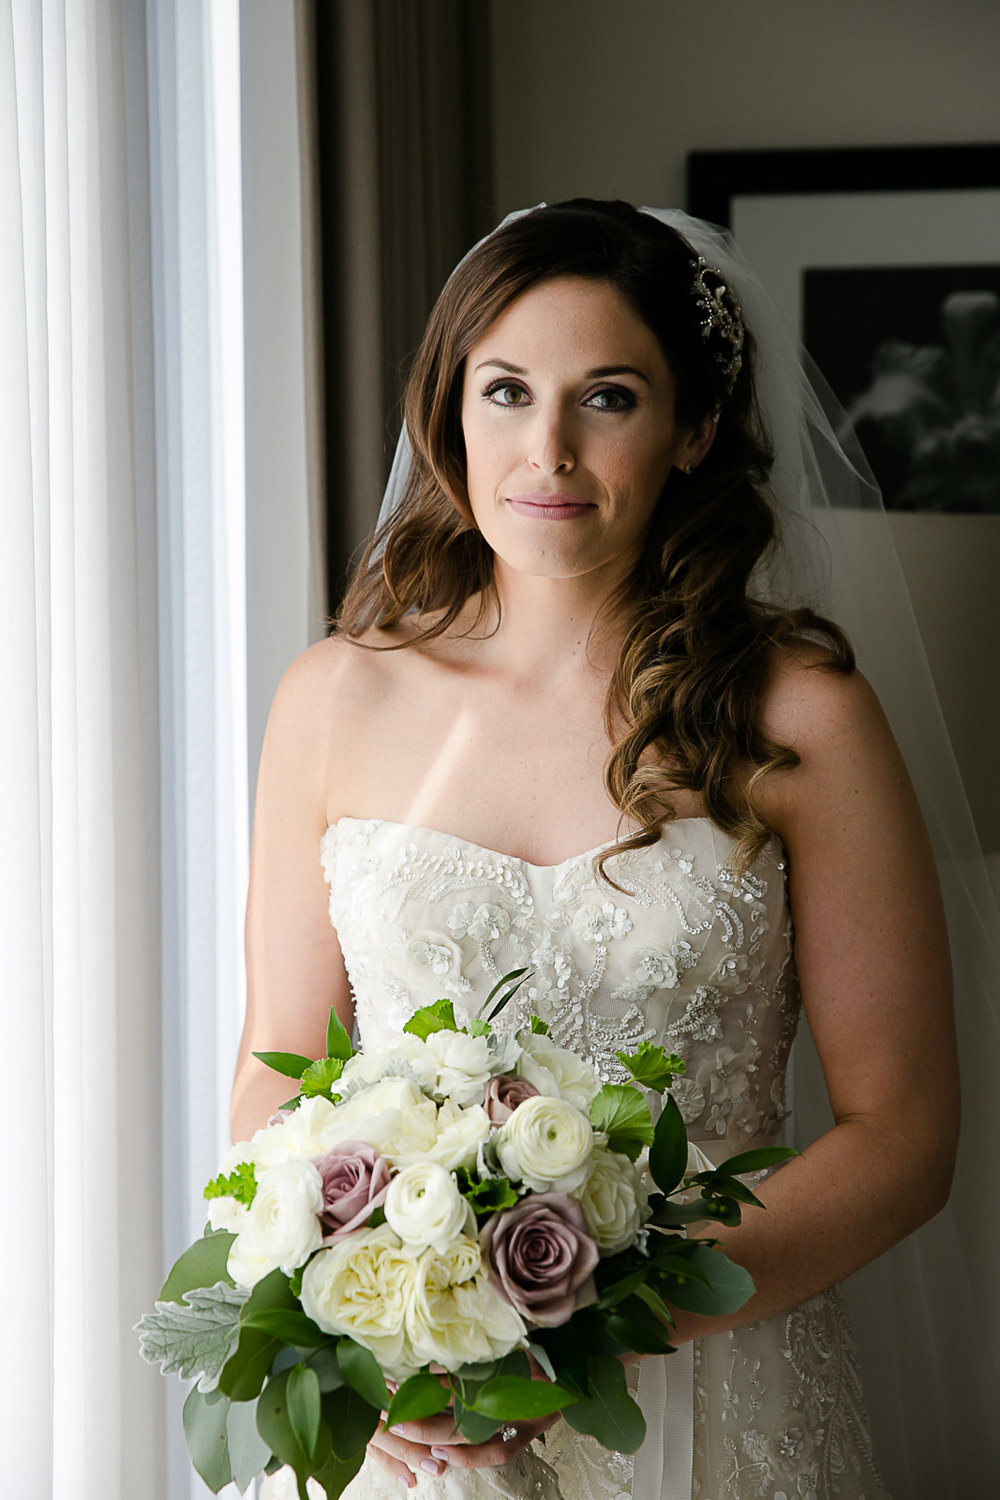 Vertical-oriented bridal portrait at the Langham's bridal suite in Chicago.